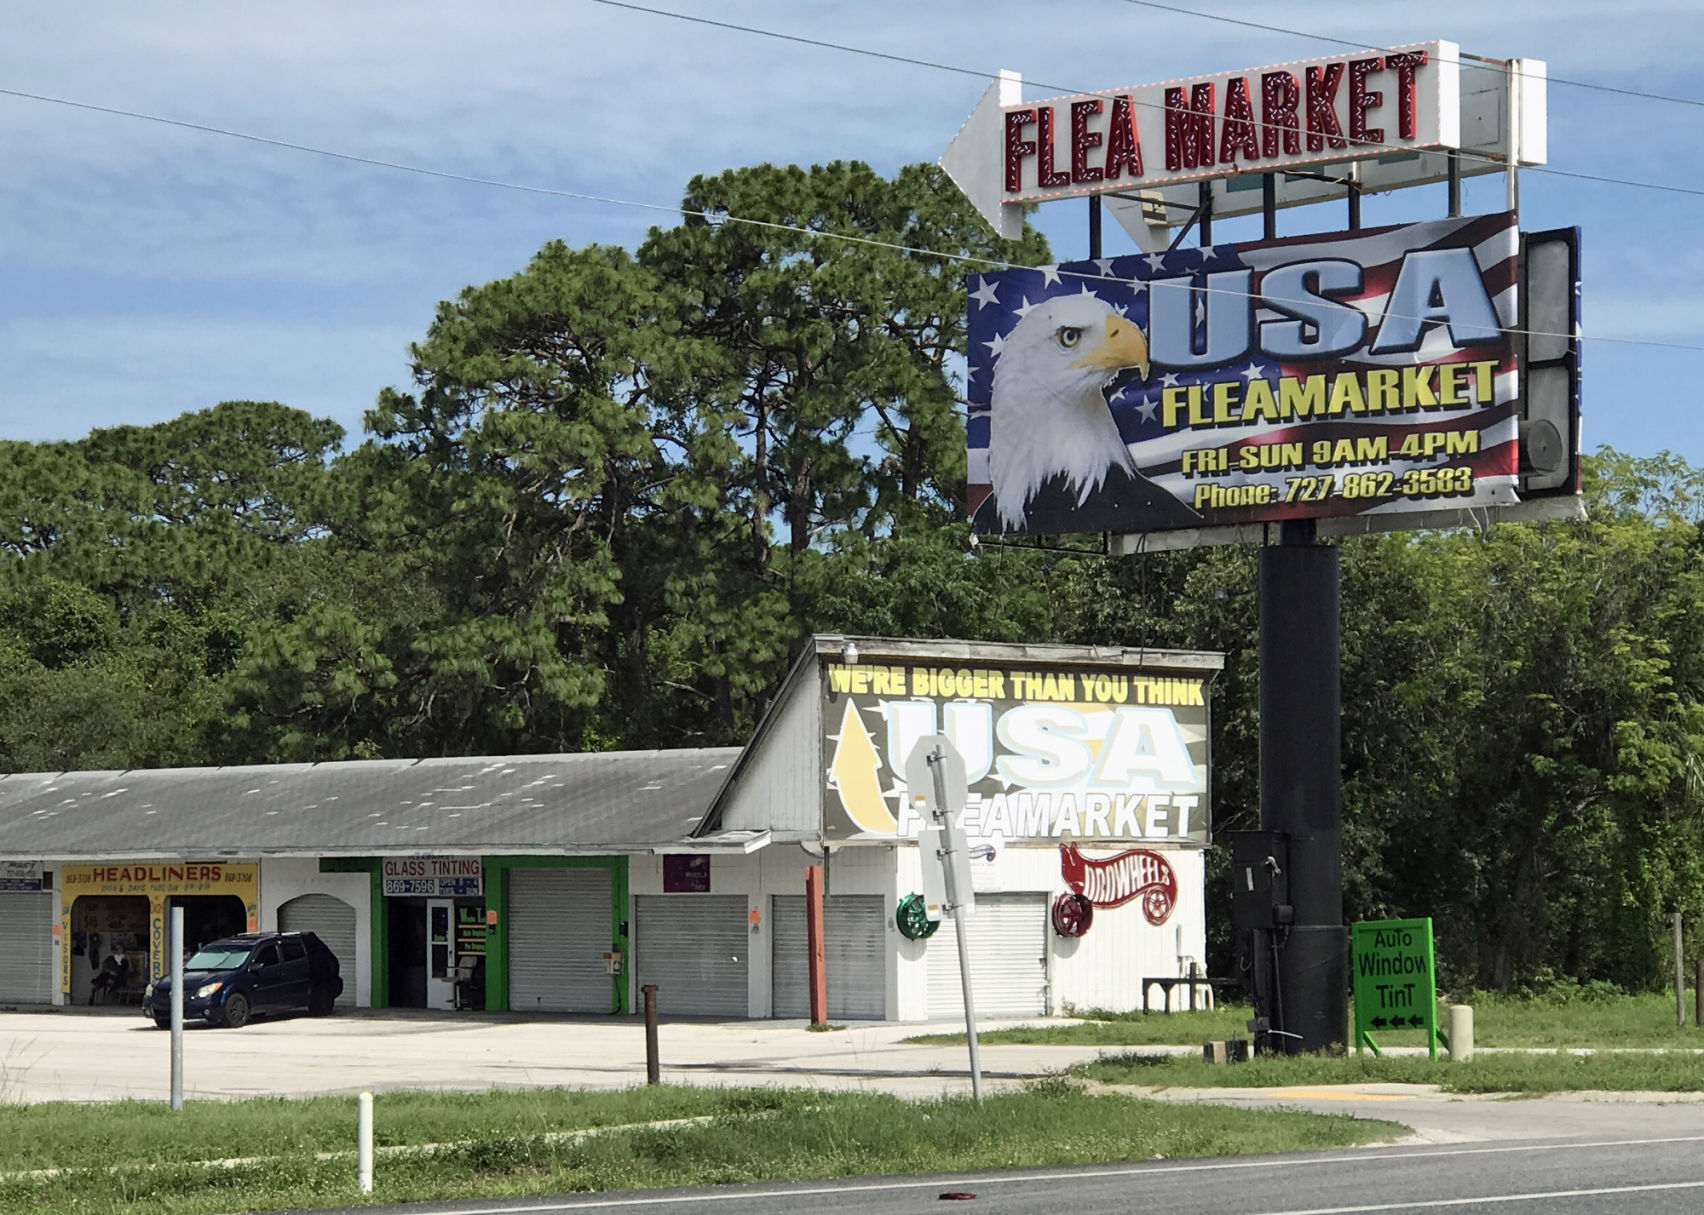 Us Area Code History%0A Pasco County officials cited extensive code violations in the decision June     to shut down USA Fleamarket on U S     south of S R